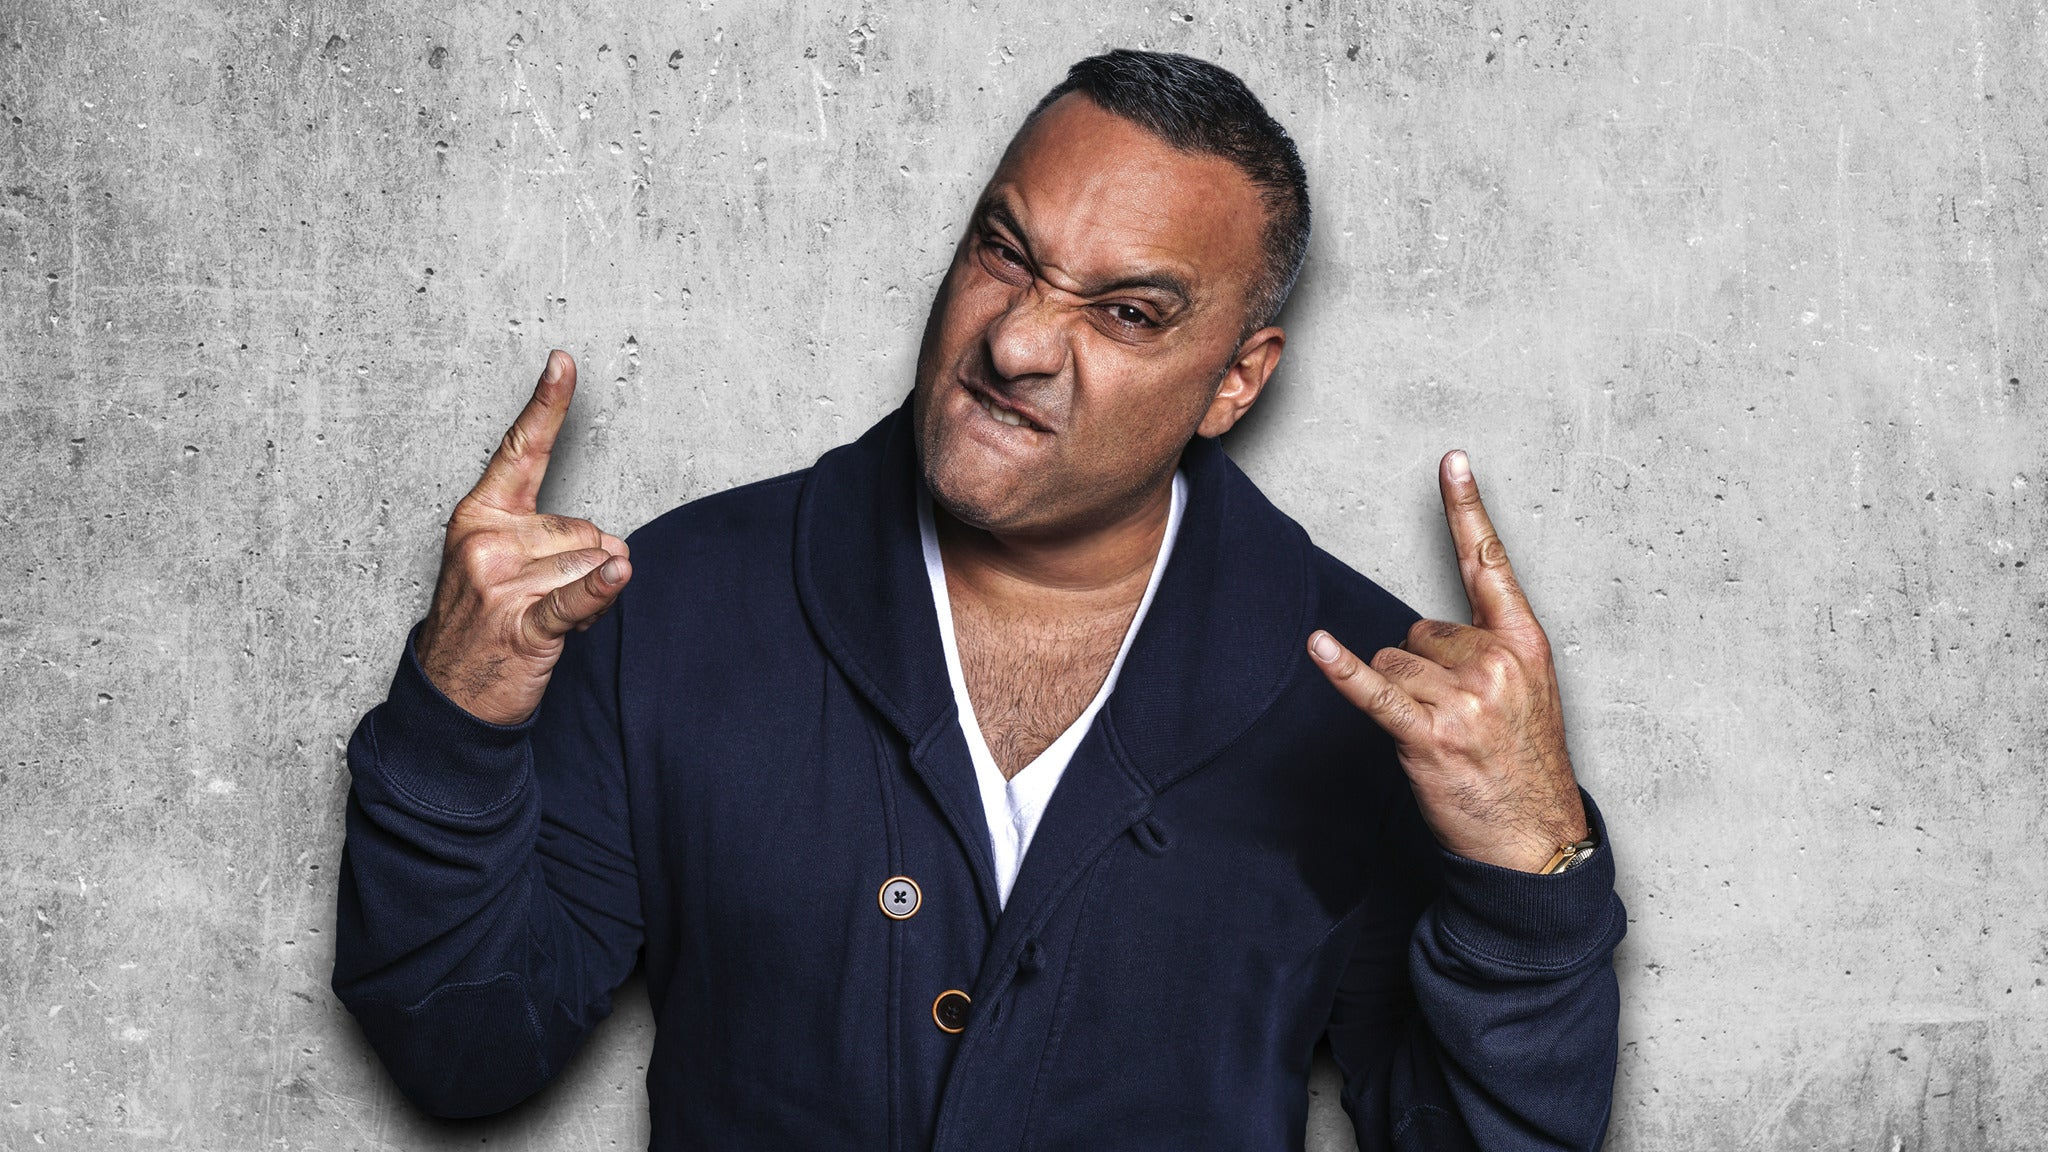 Russell Peters at Chicago Improv - Schaumburg, IL 60173